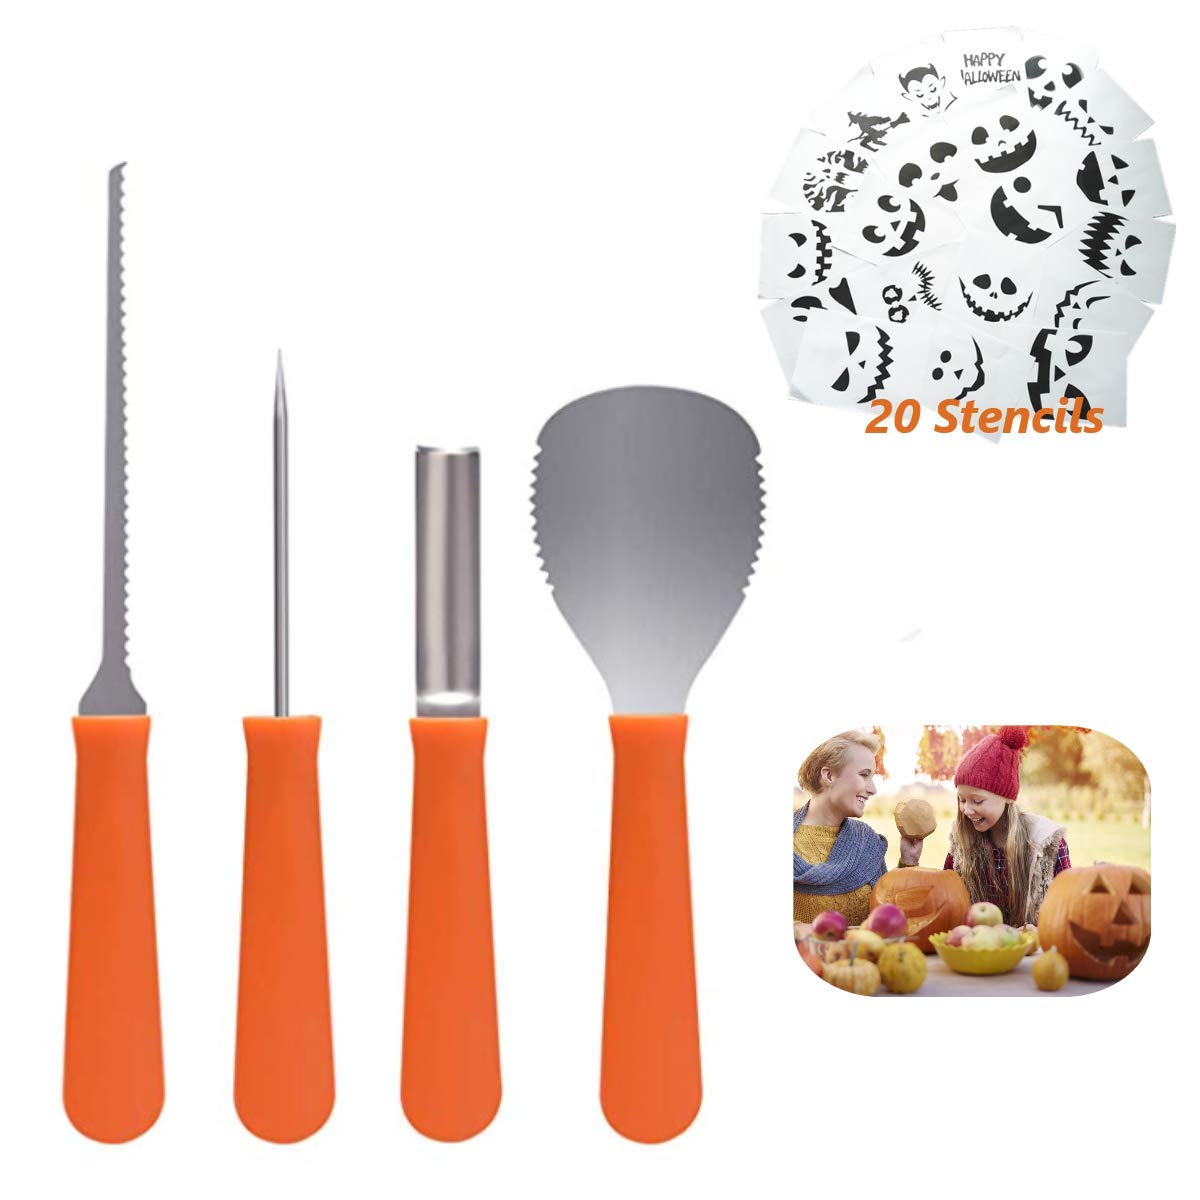 Professional Pumpkin Carving Tools Kit【Set of 4】Premium Heavy Duty Stainless Steel Knives for Easily Sculpt Halloween Jack-O-Lanterns with【Many Pumpkin Carved Stencils/Patterns/Templates】 by AUXIN